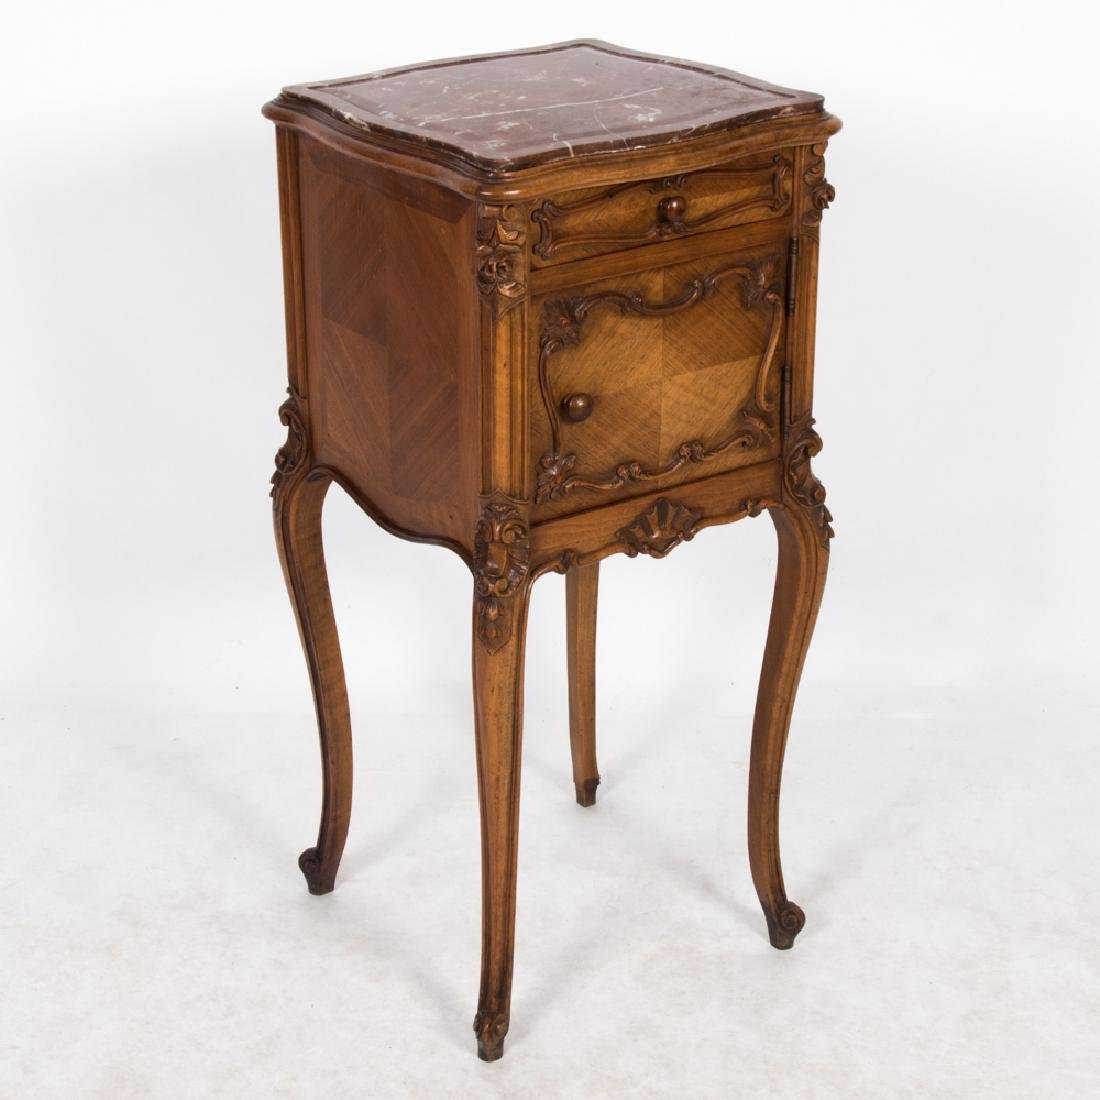 A French Provincial Style Walnut Side Cabinet with